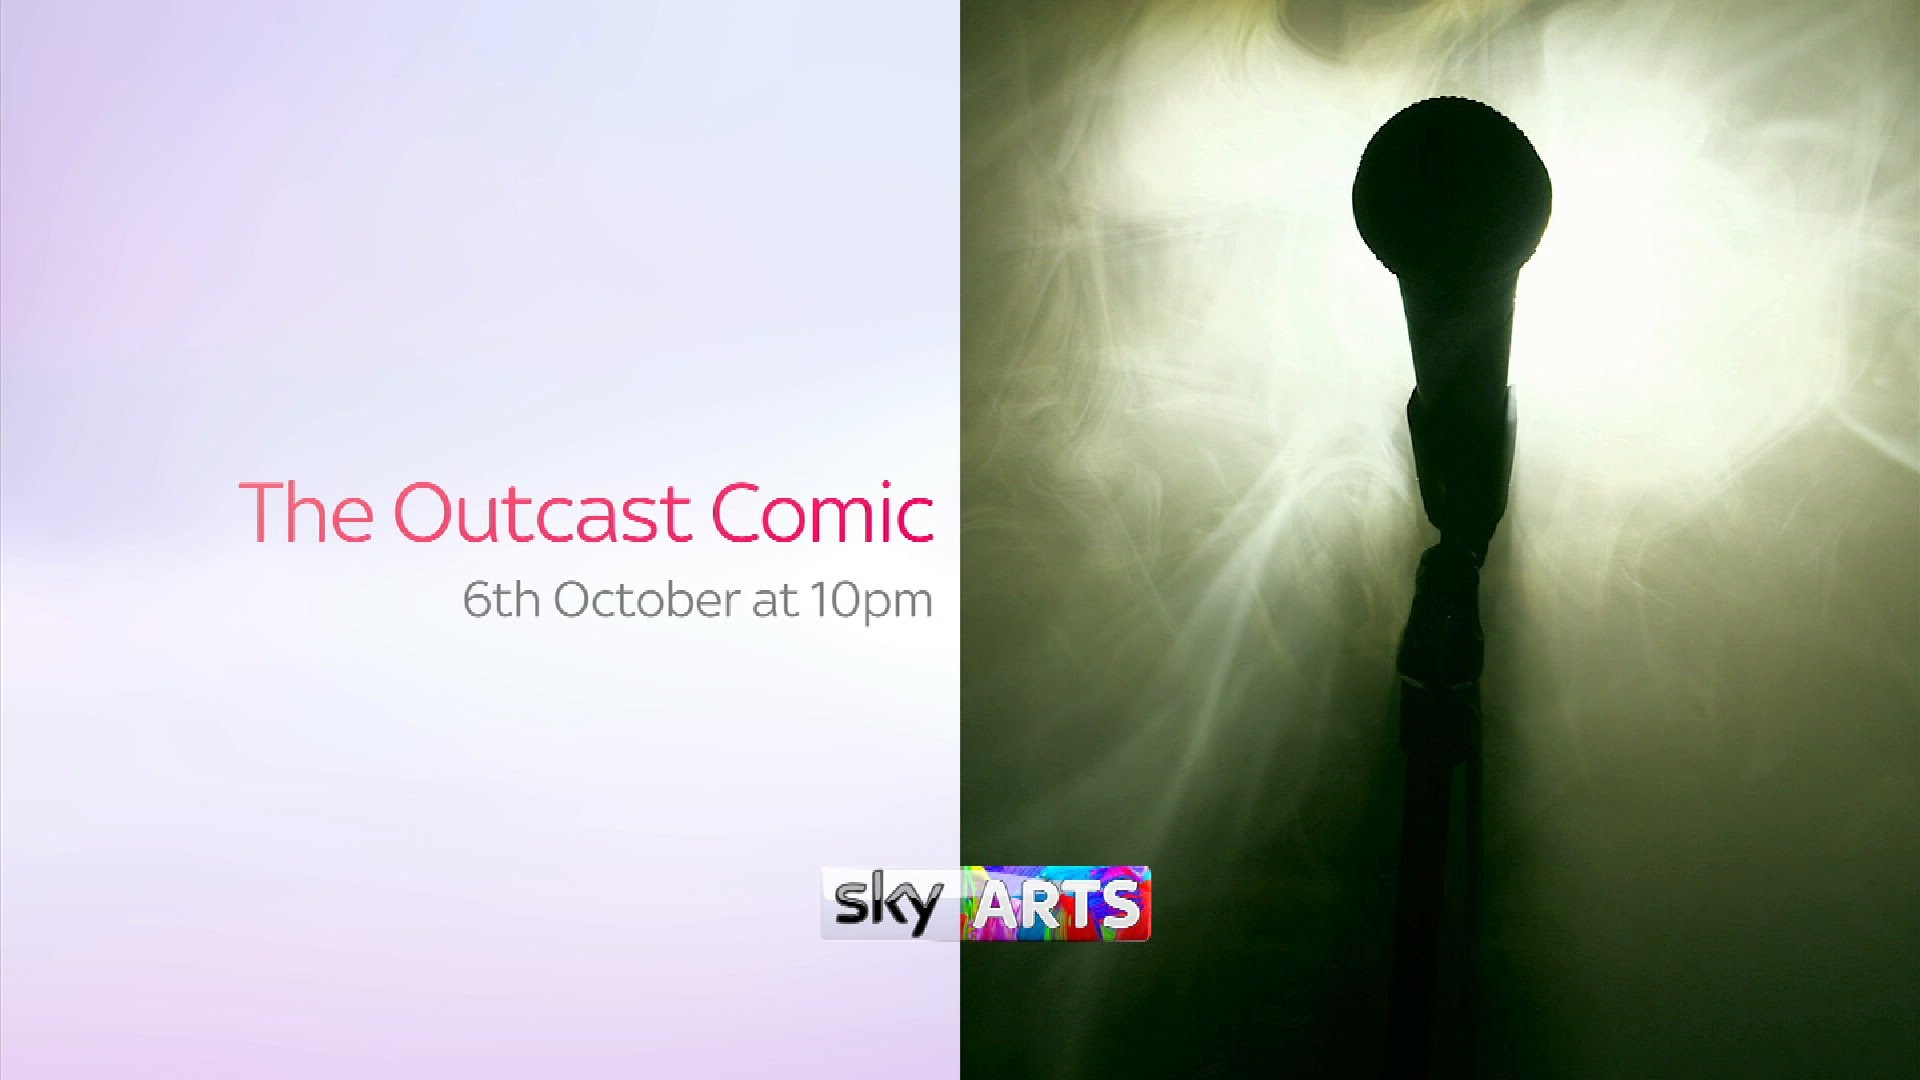 The Outcast Comic | 6th October at 10pm 2